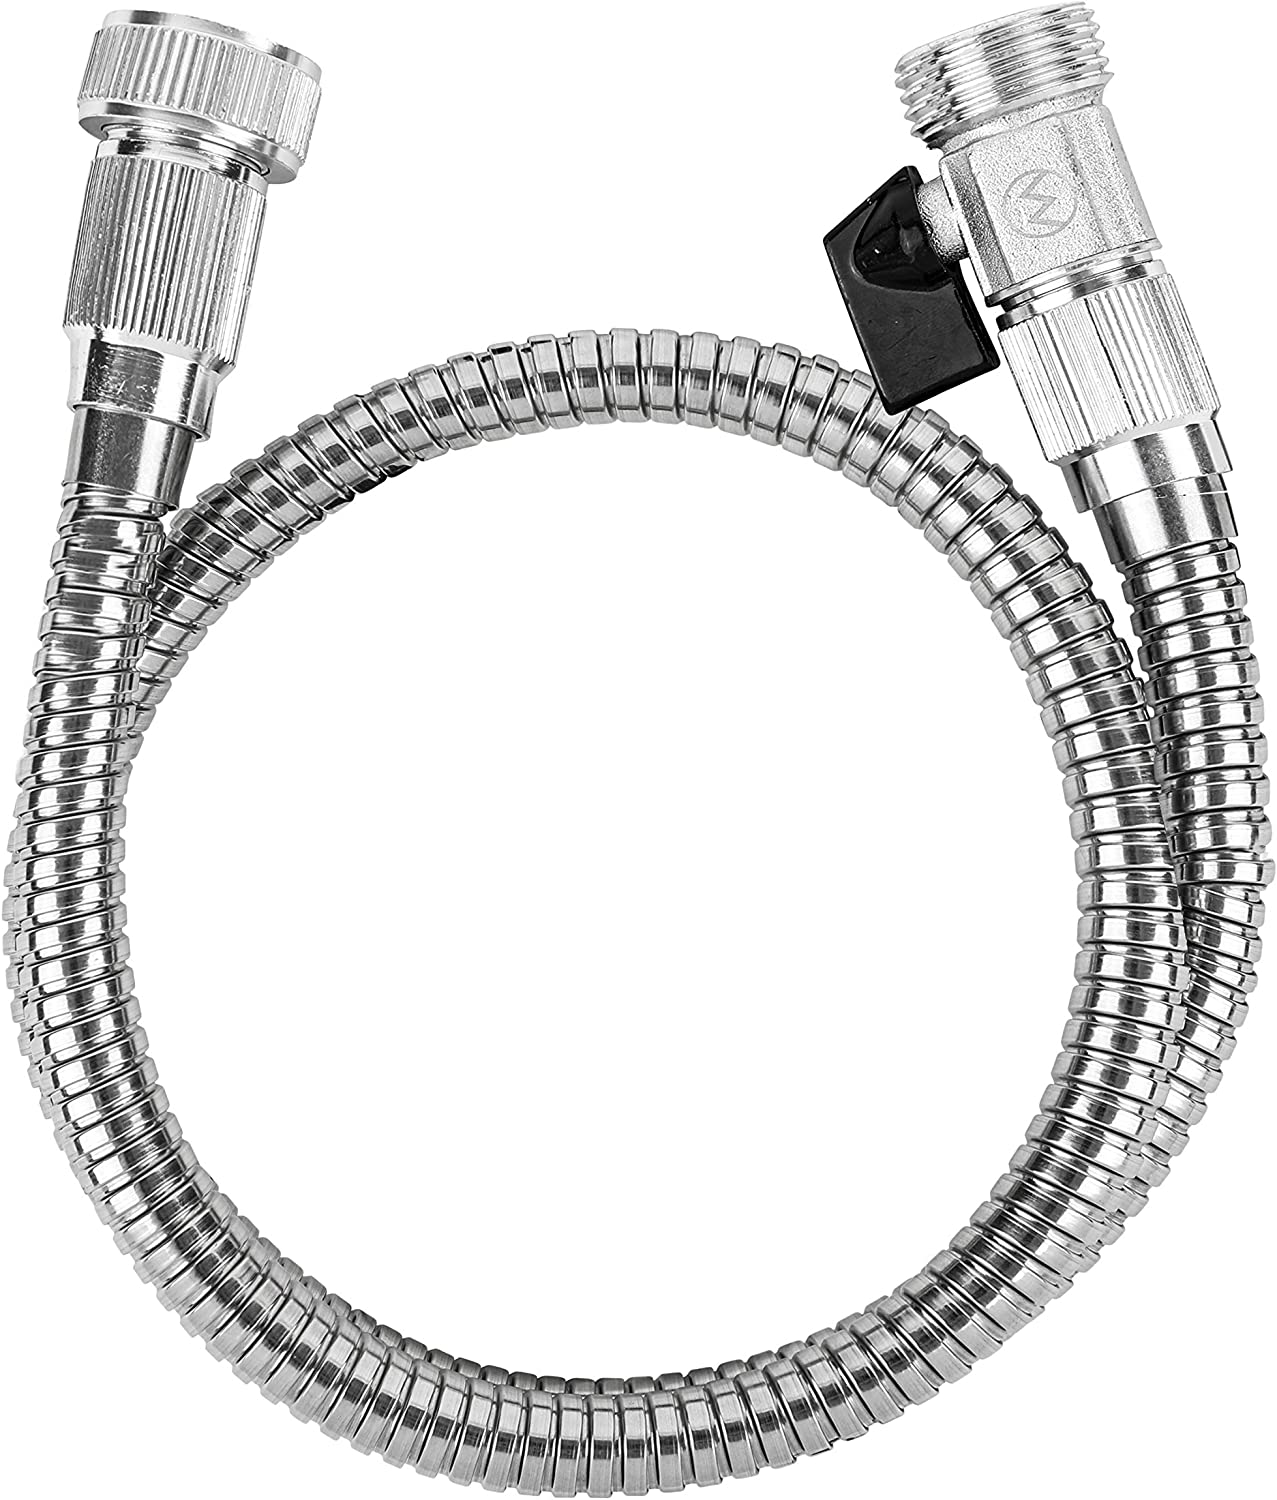 Morvat Stainless Steel Garden Hose 3 ft, Hose Reel Leader Hose, Short Connector Hose, On/Off Valve, Flexible Coil Hose, 3 FT